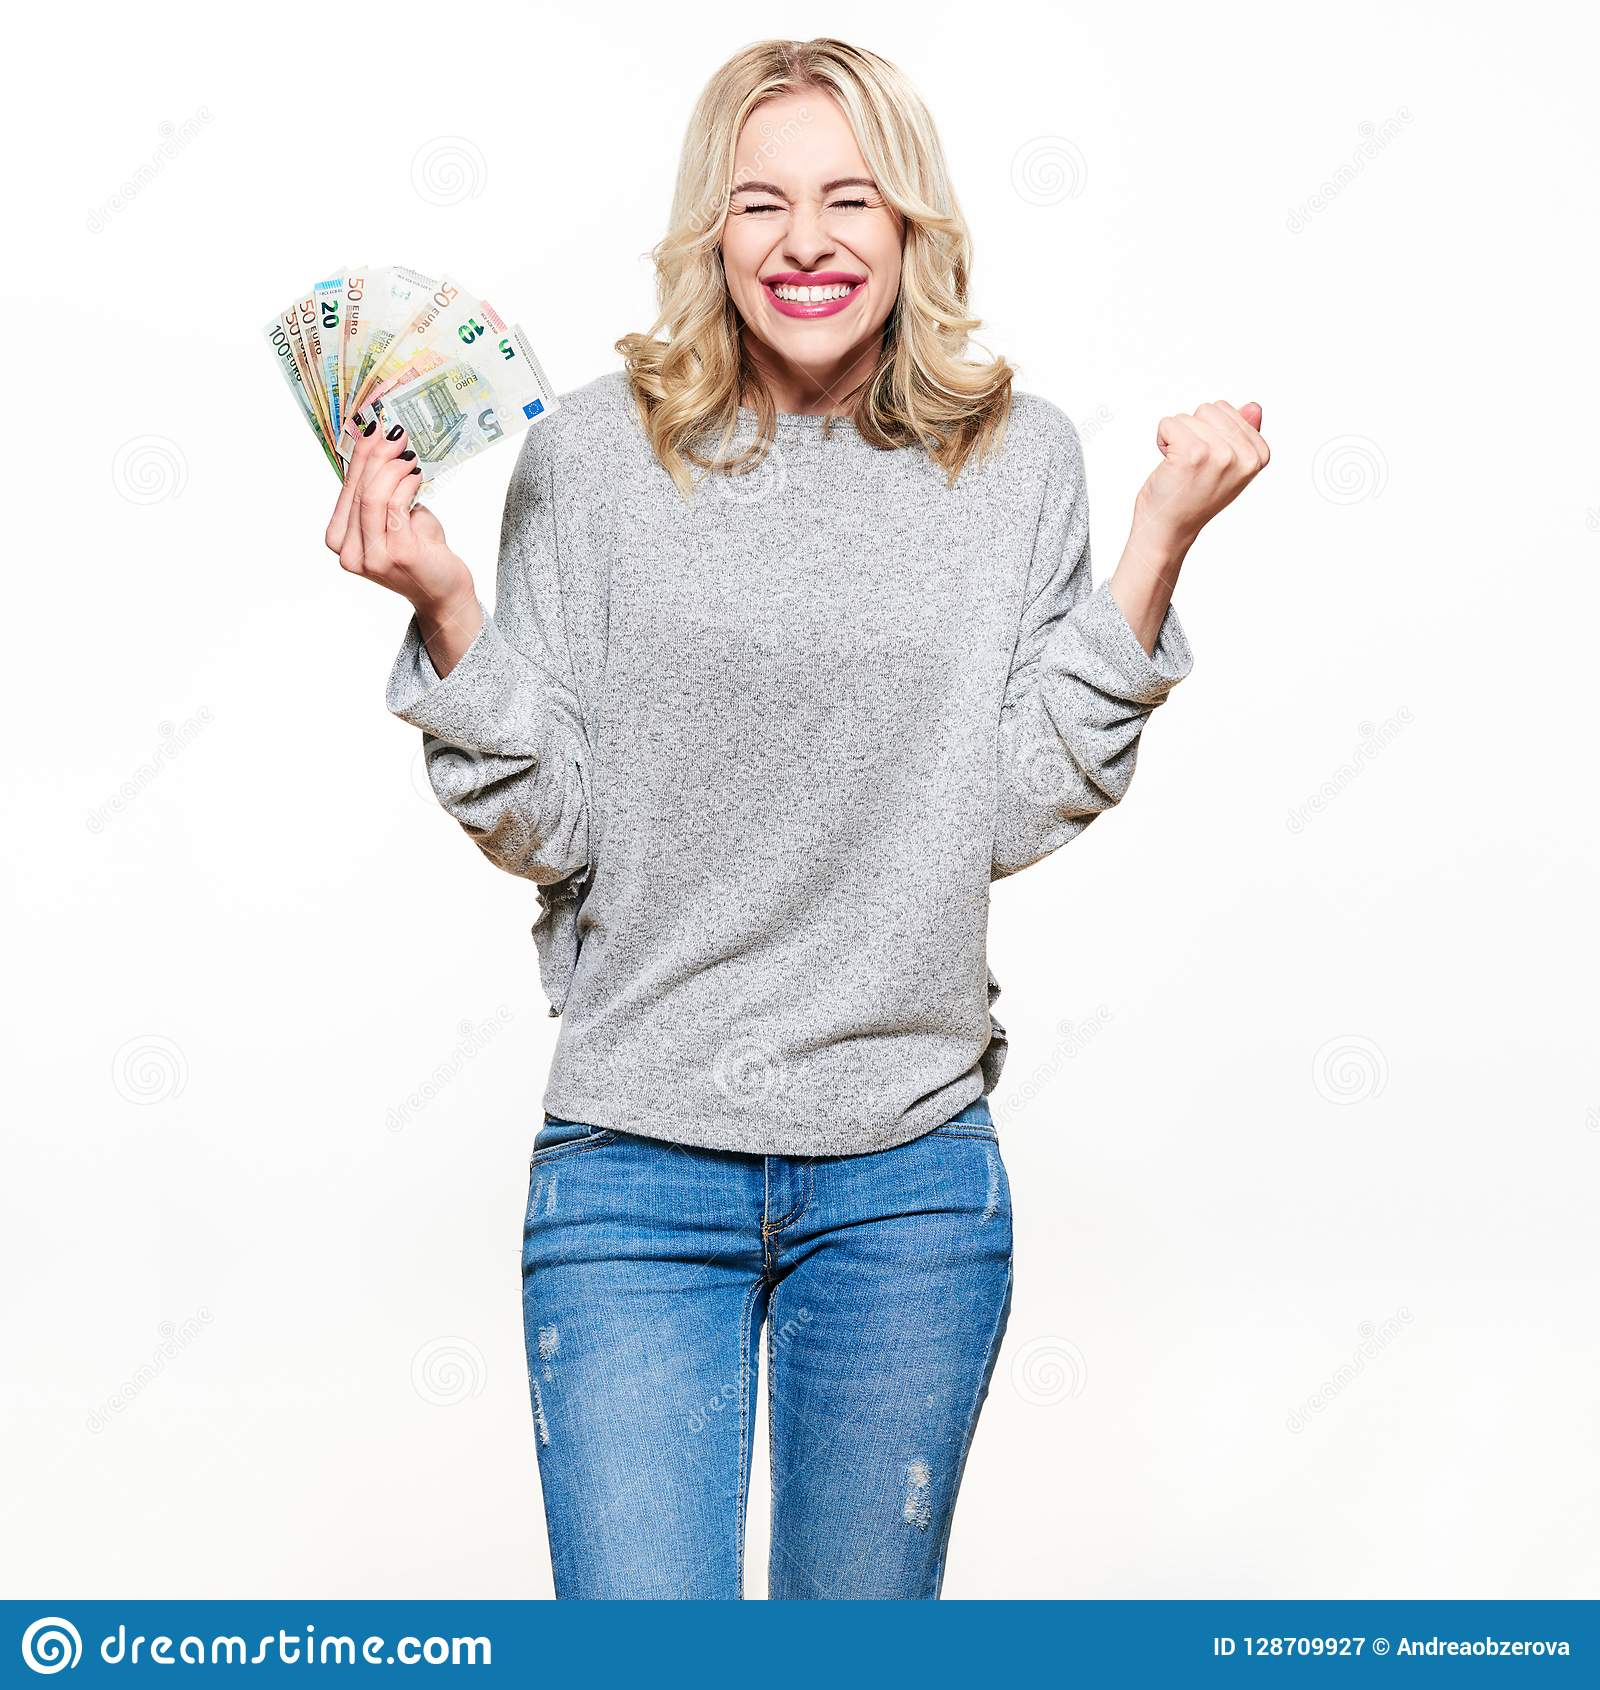 Super excited young woman in grey sweater and jeans holding bunch of Euro banknotes, clinching fists, celebrating.